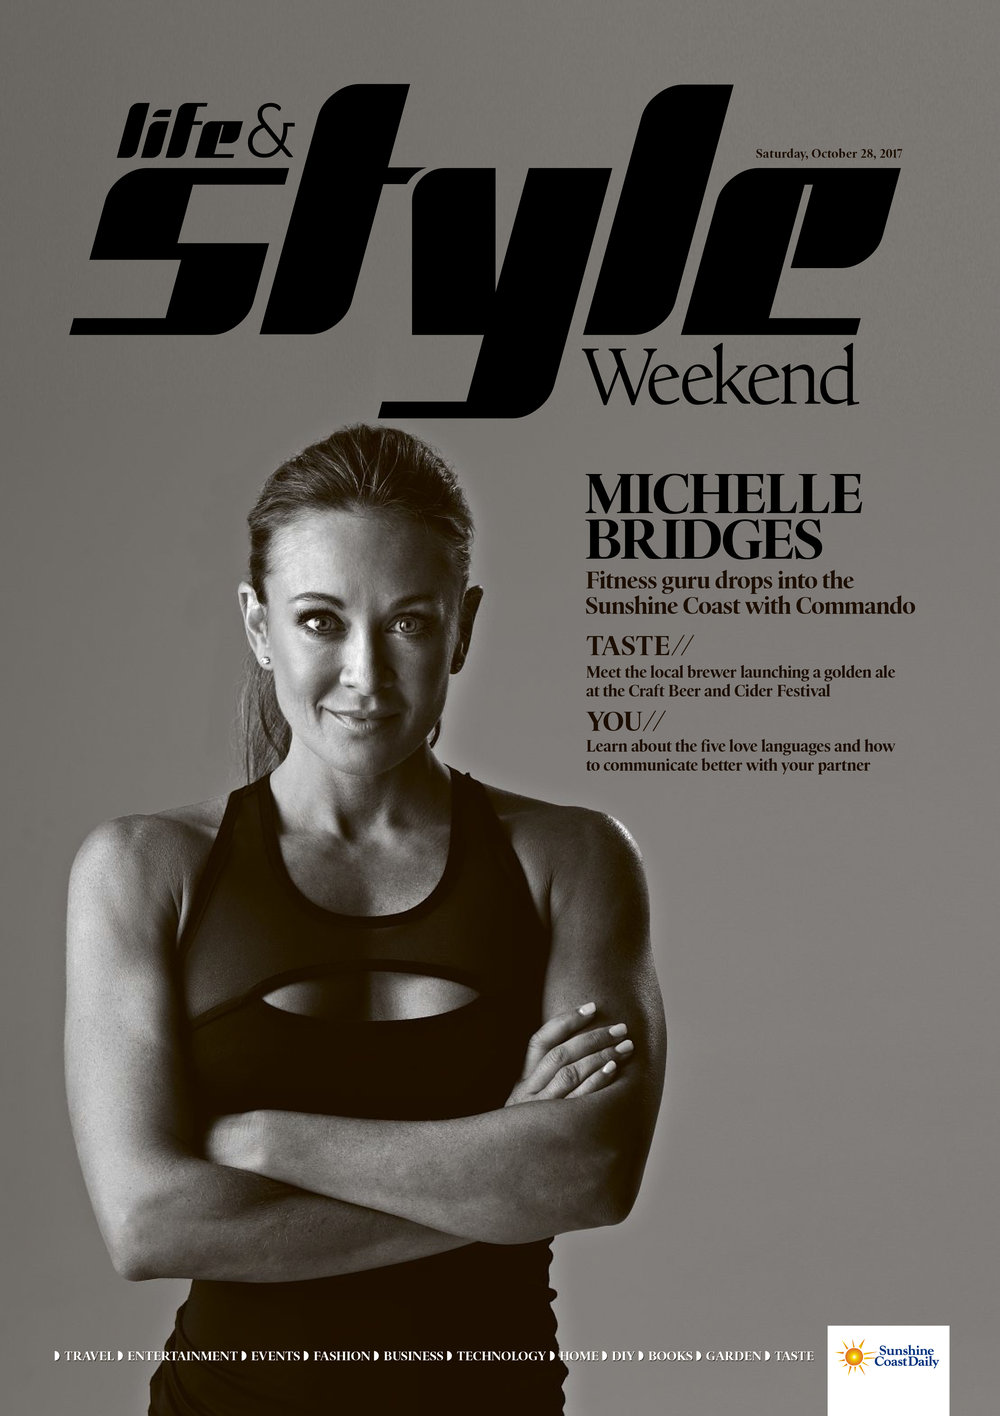 Michelle Bridges - Fitness guru drops into the Sunshine Coast with Commando